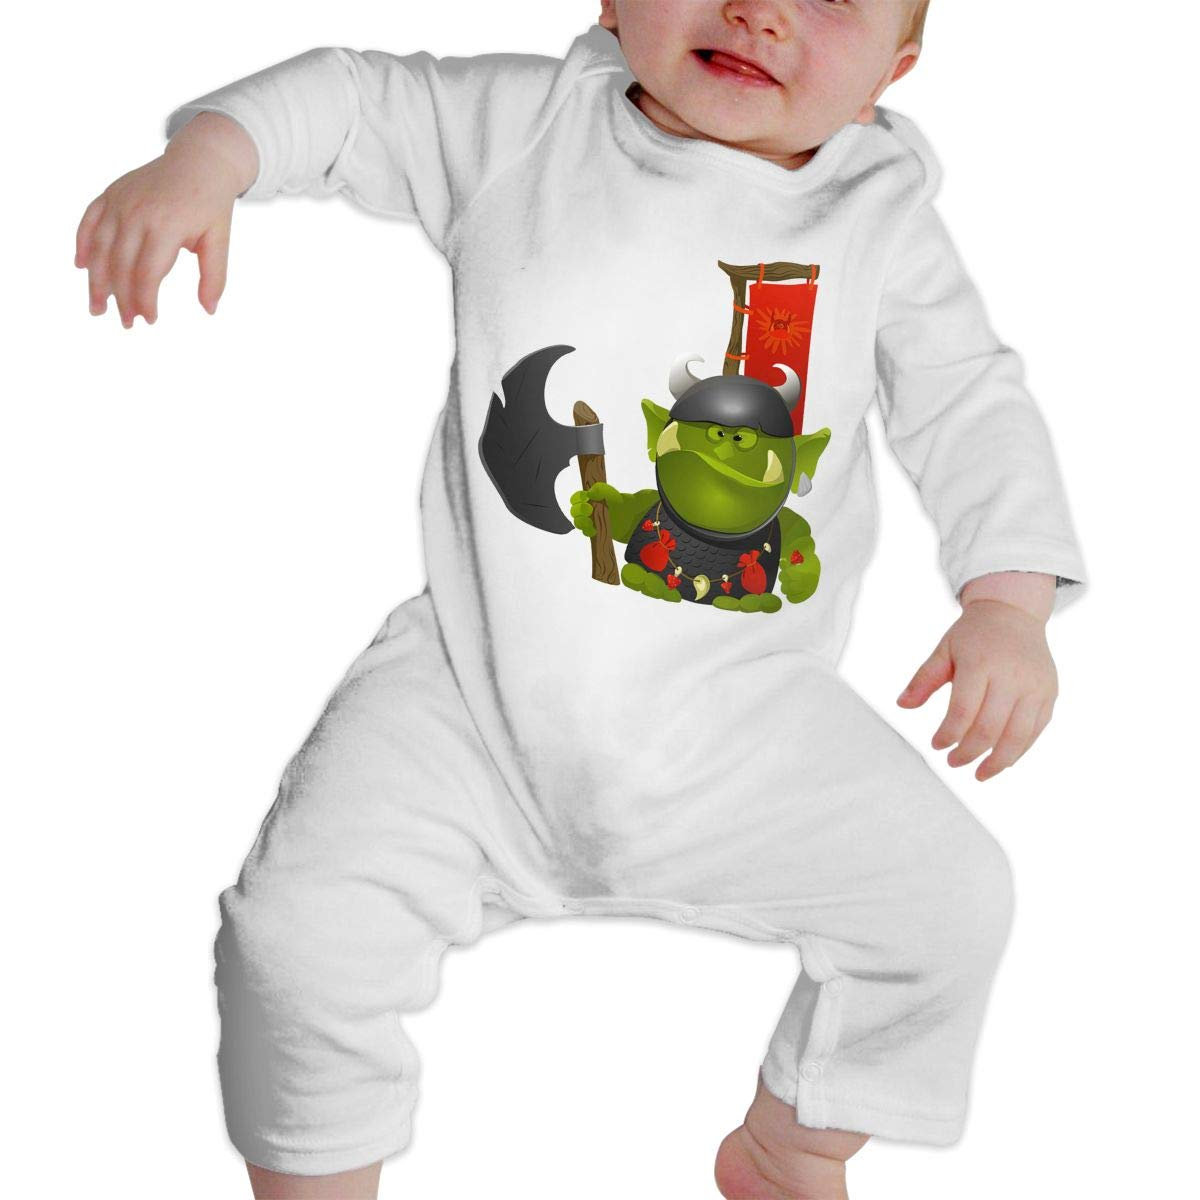 CharmKAT Baby Crew Neck Long Sleeve Solid Color Climbing Clothes Jumpsuit